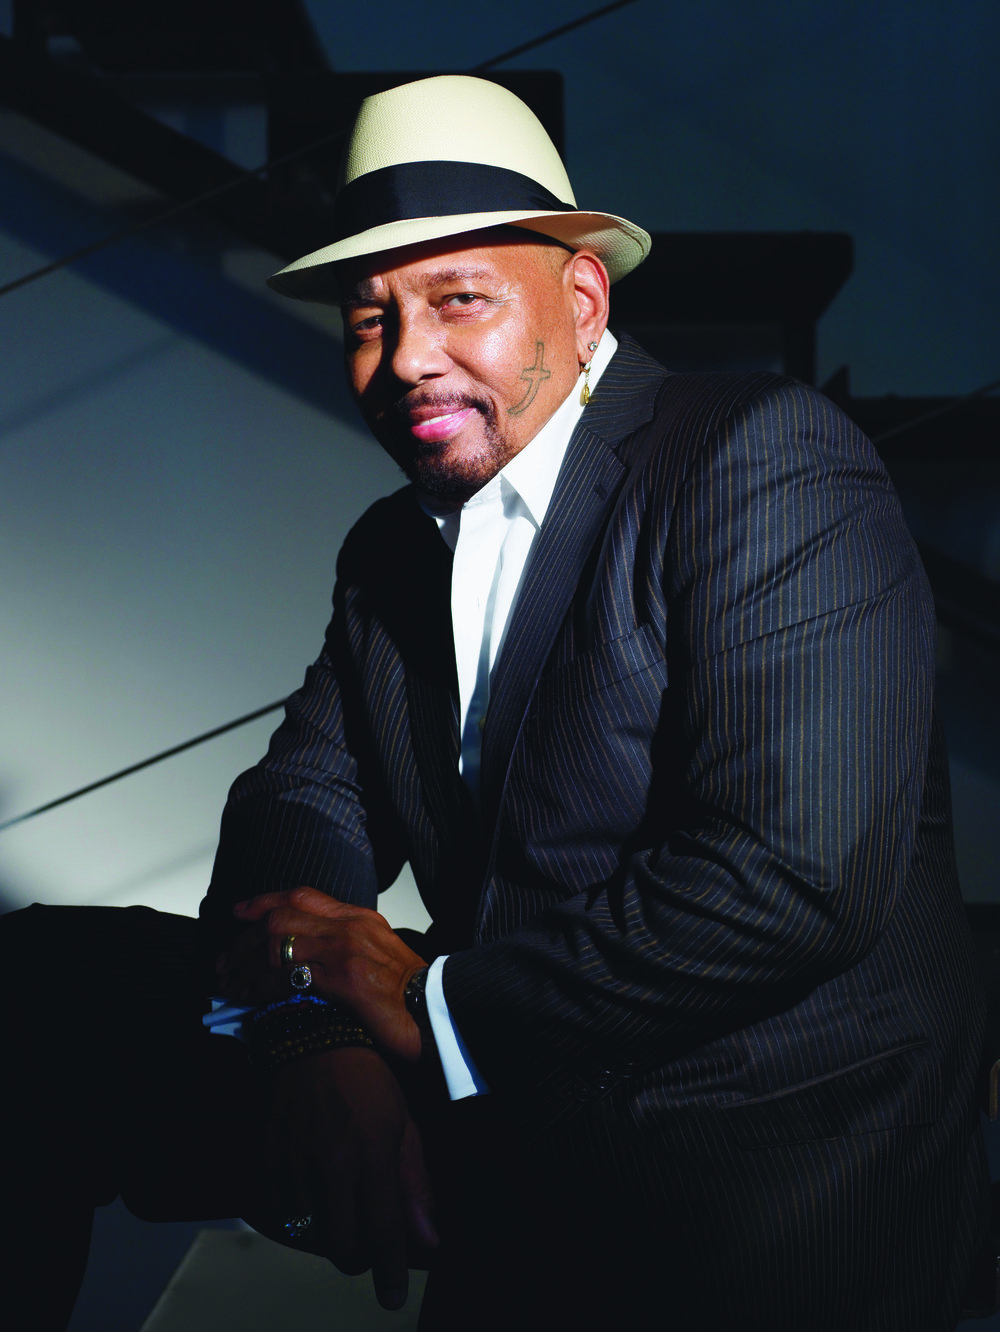 aaron_neville_photo_1.jpg